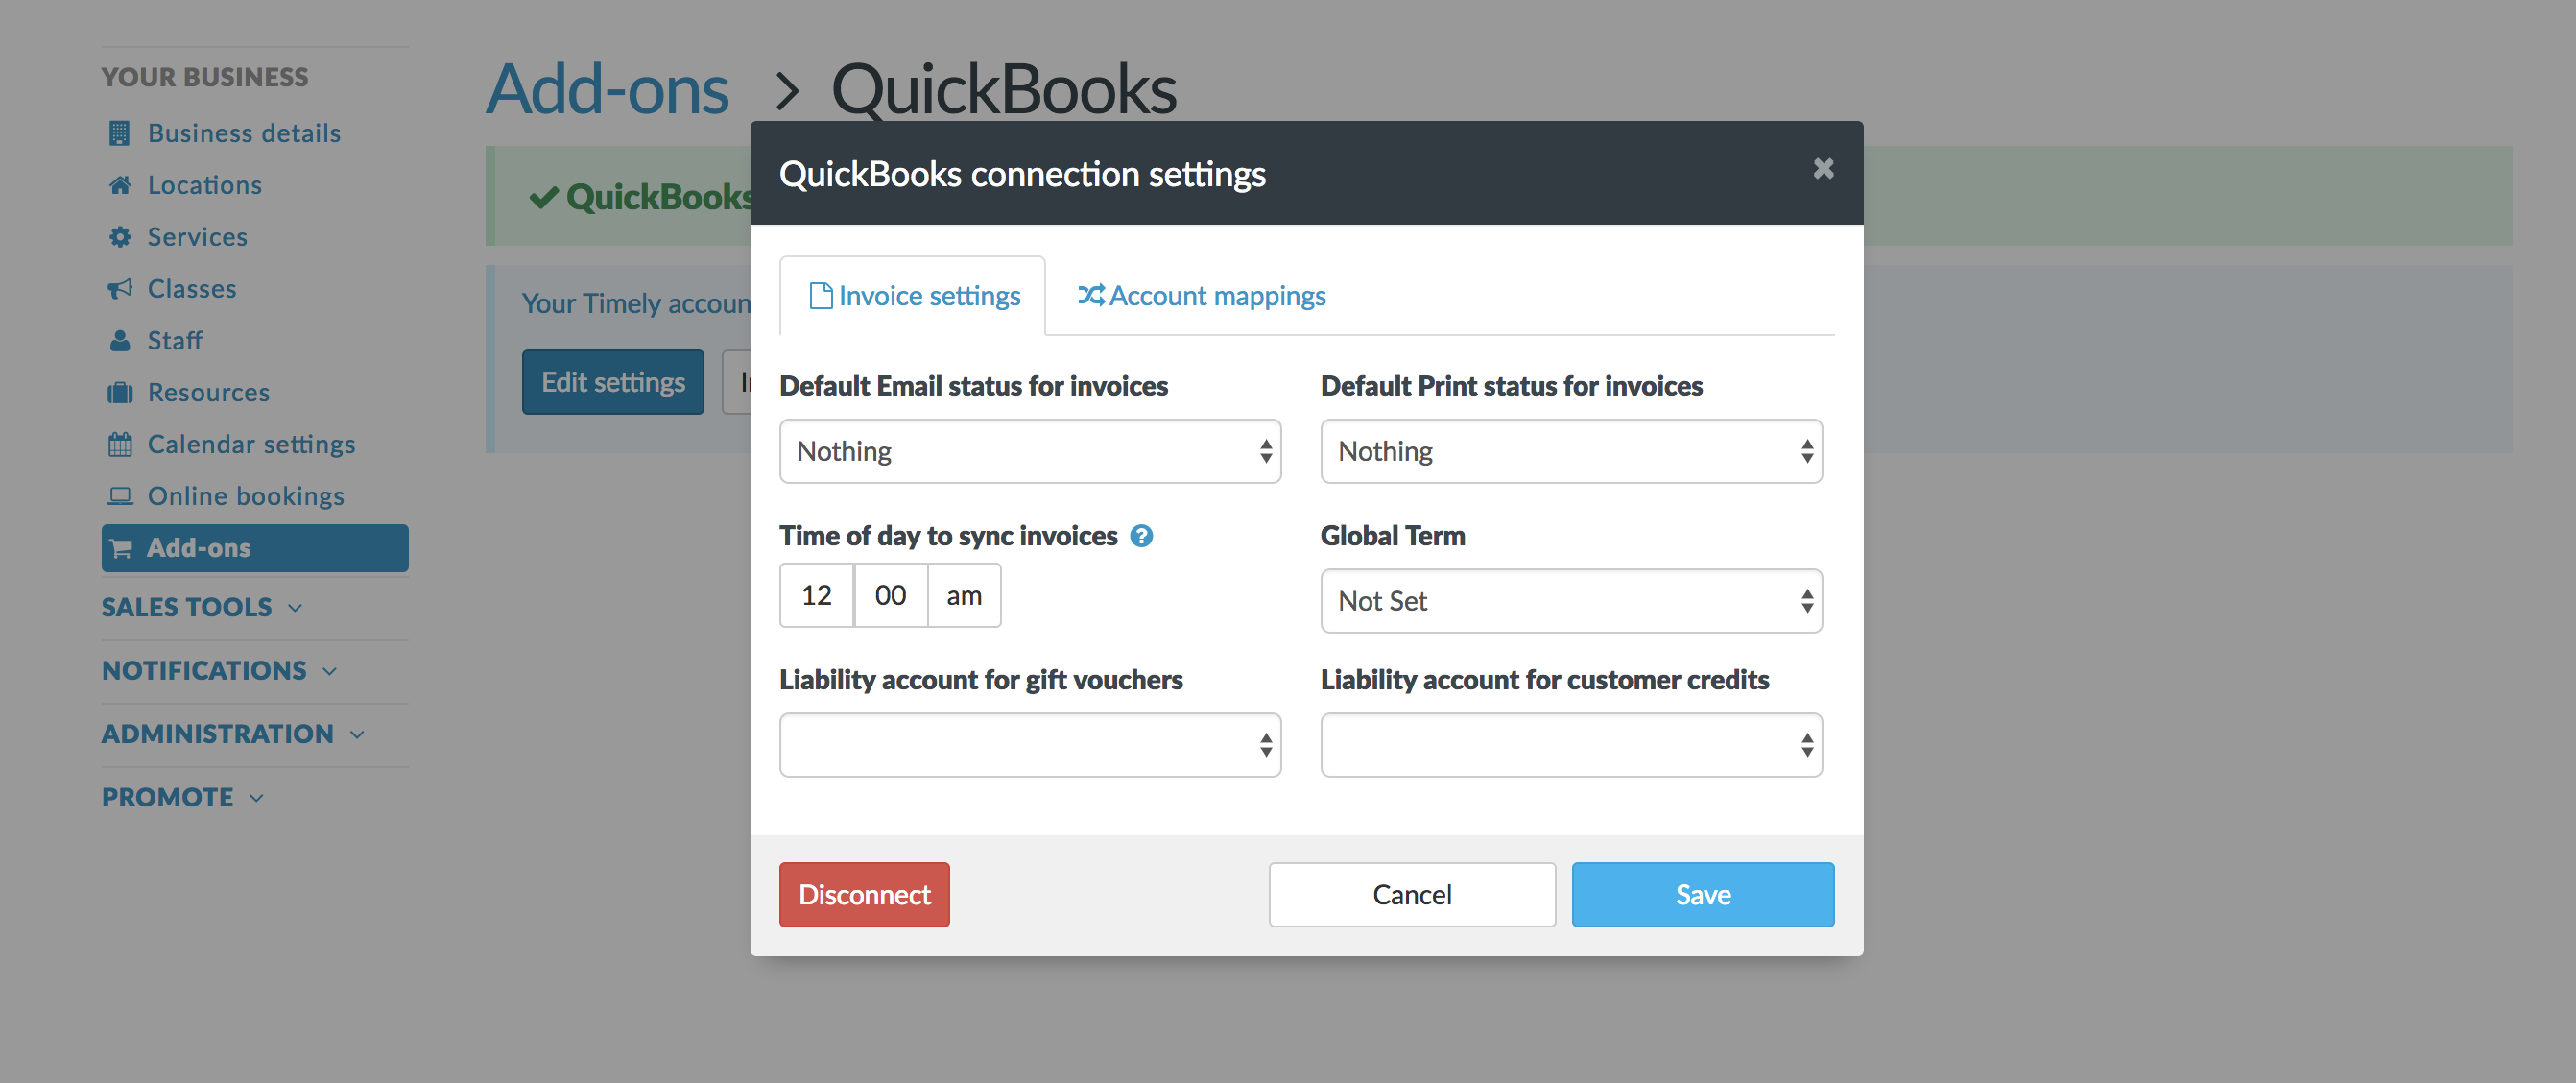 How To Adjust Your Quickbooks Online Settings Timely Help Docs - Quickbooks invoice status